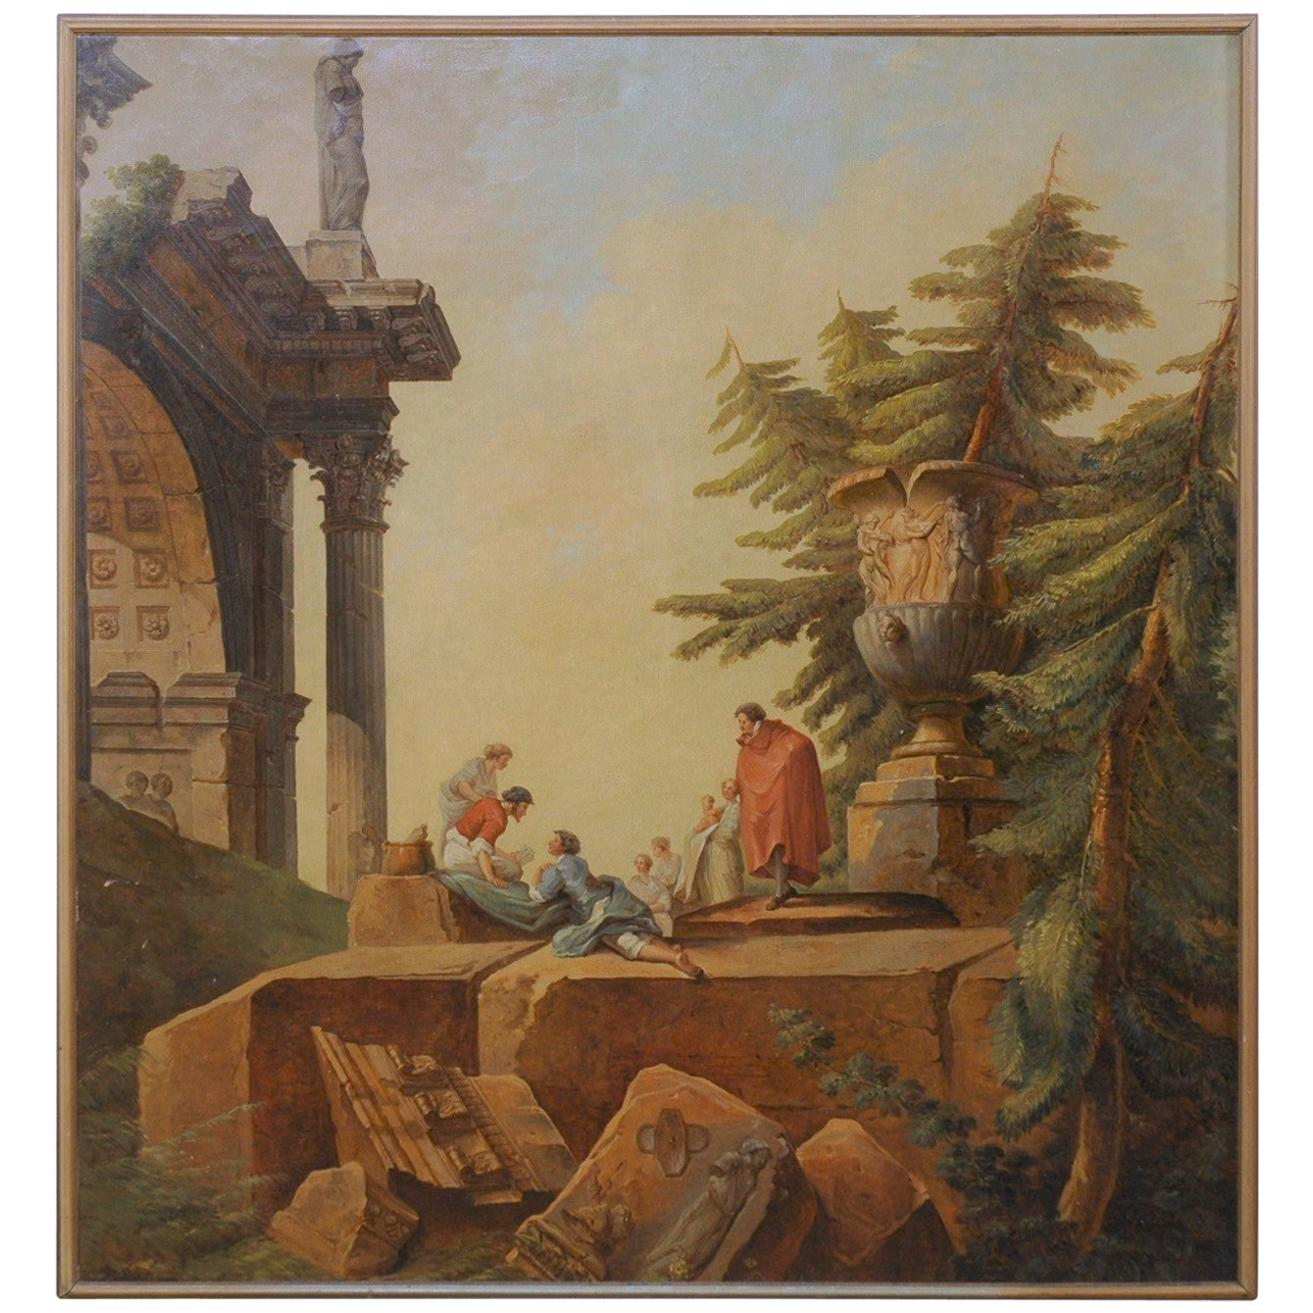 Italian 19th Century Classical Romanesque Framed Wall Painting